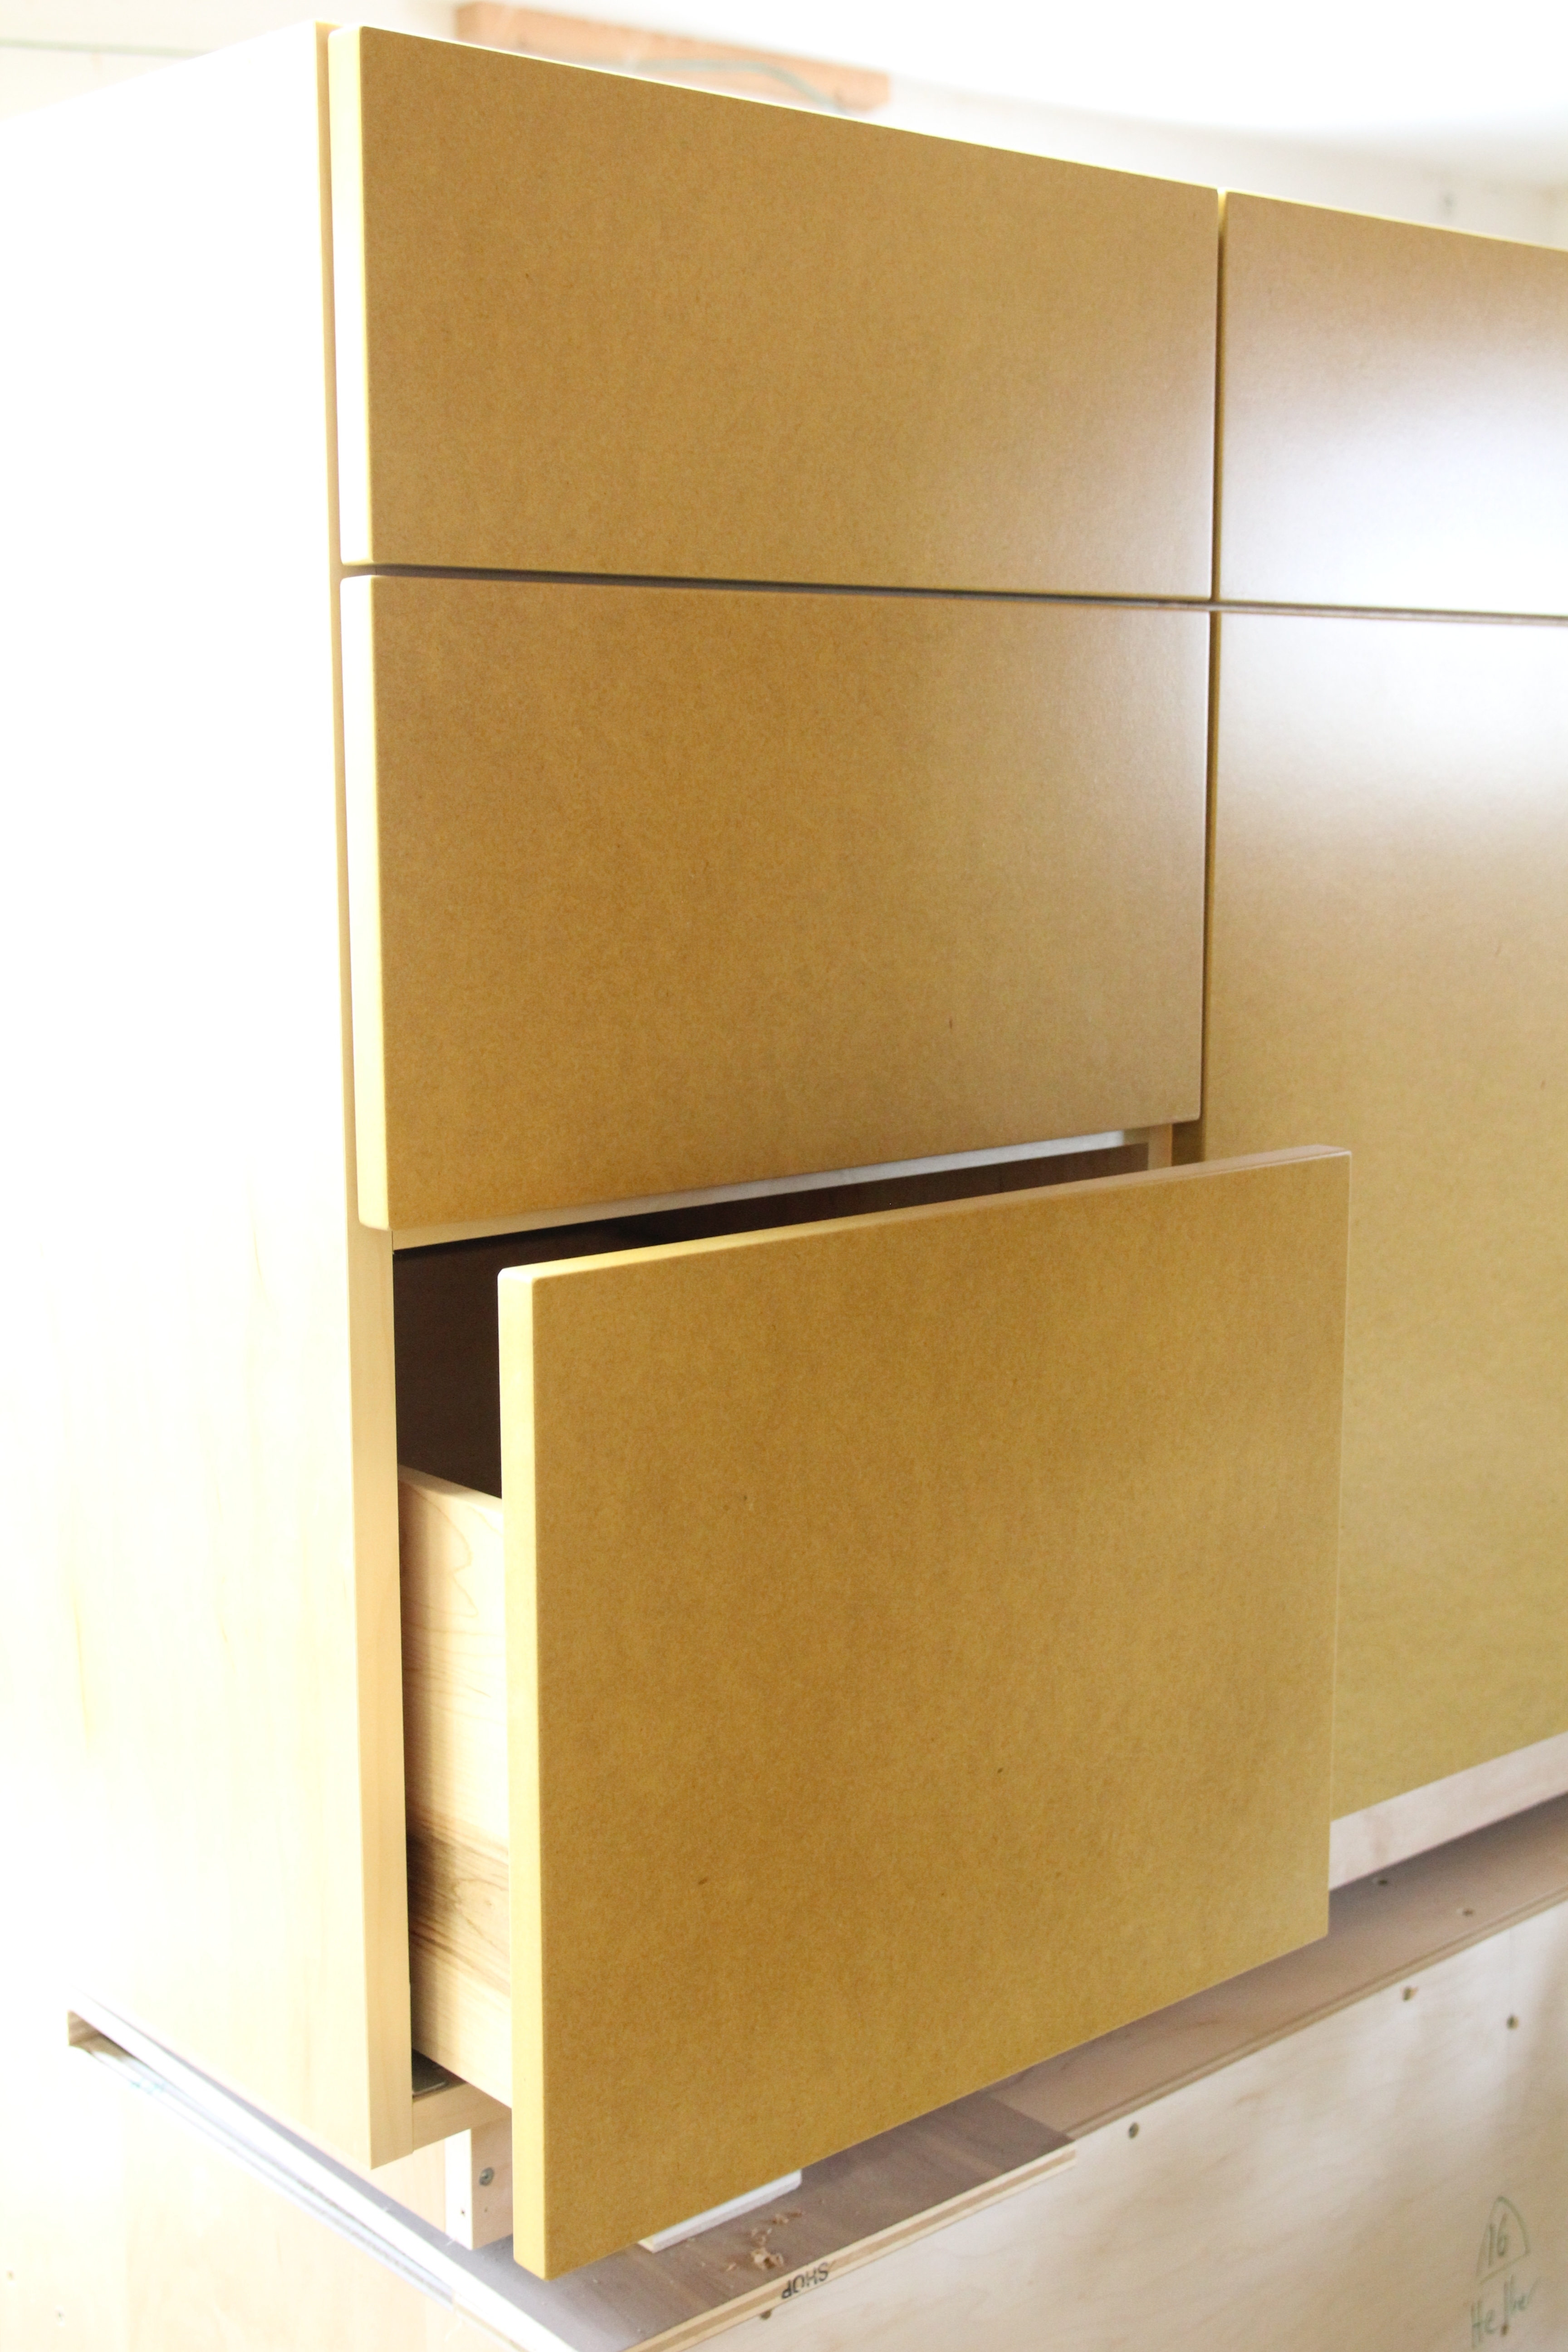 Open Face Storage Cabinets